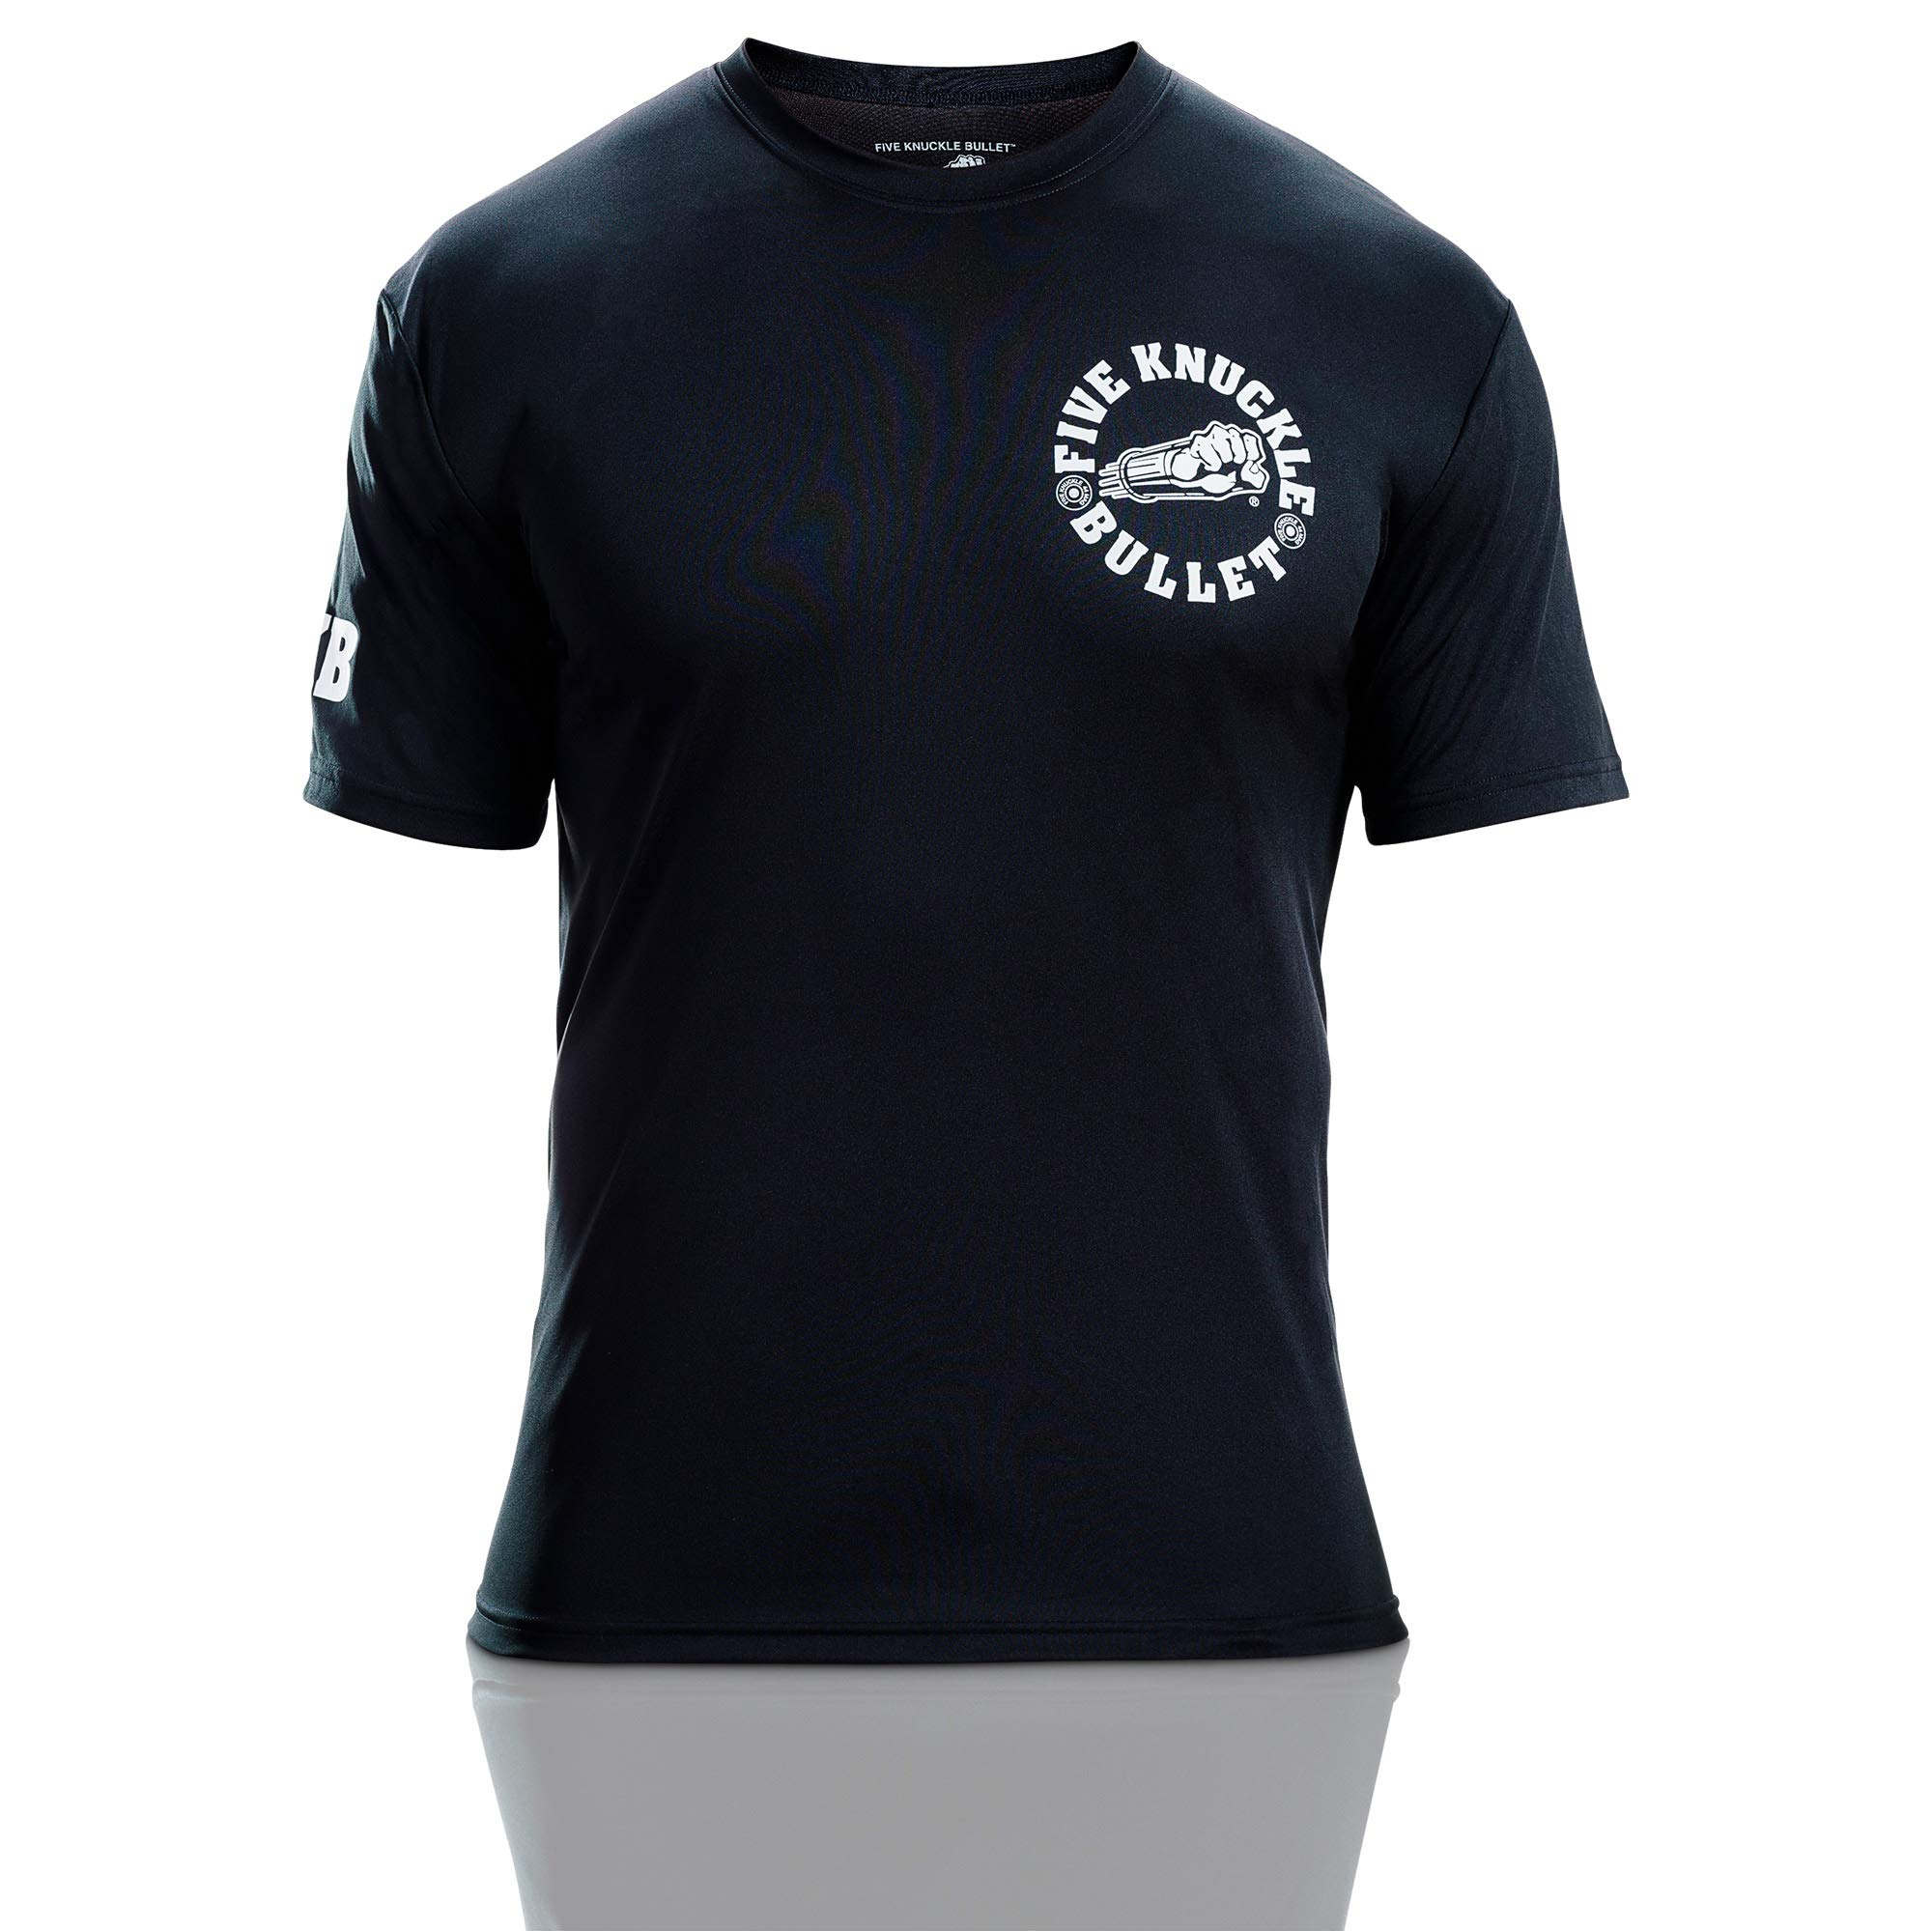 FIVE KNUCKLE BULLET Short Sleeve Performance T-Shirt